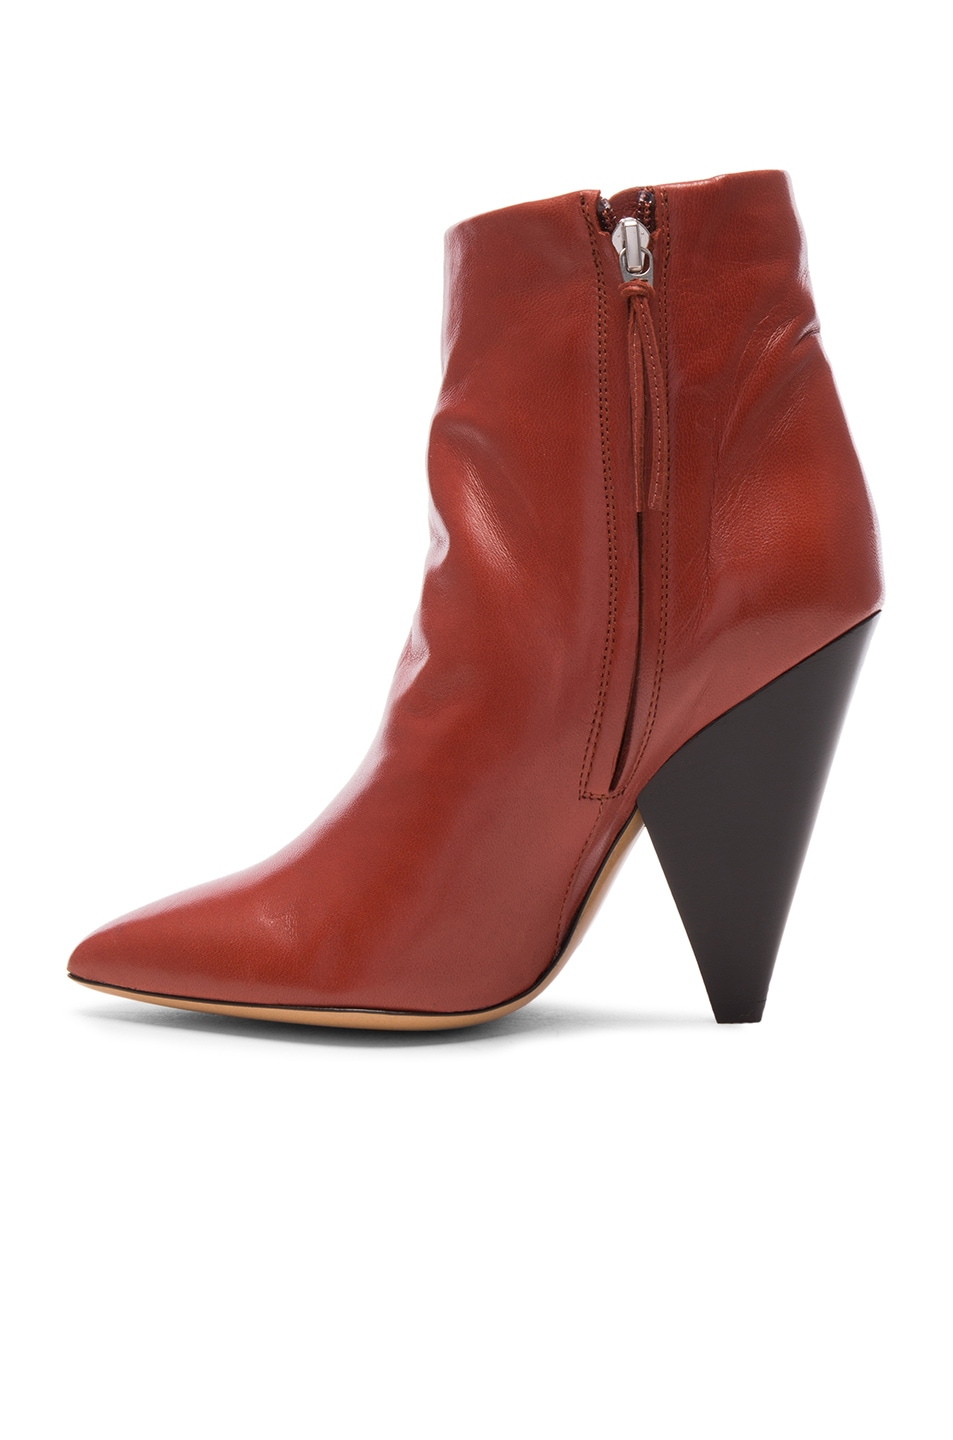 Image 5 of Isabel Marant Leather Leydoni Booties in Rust